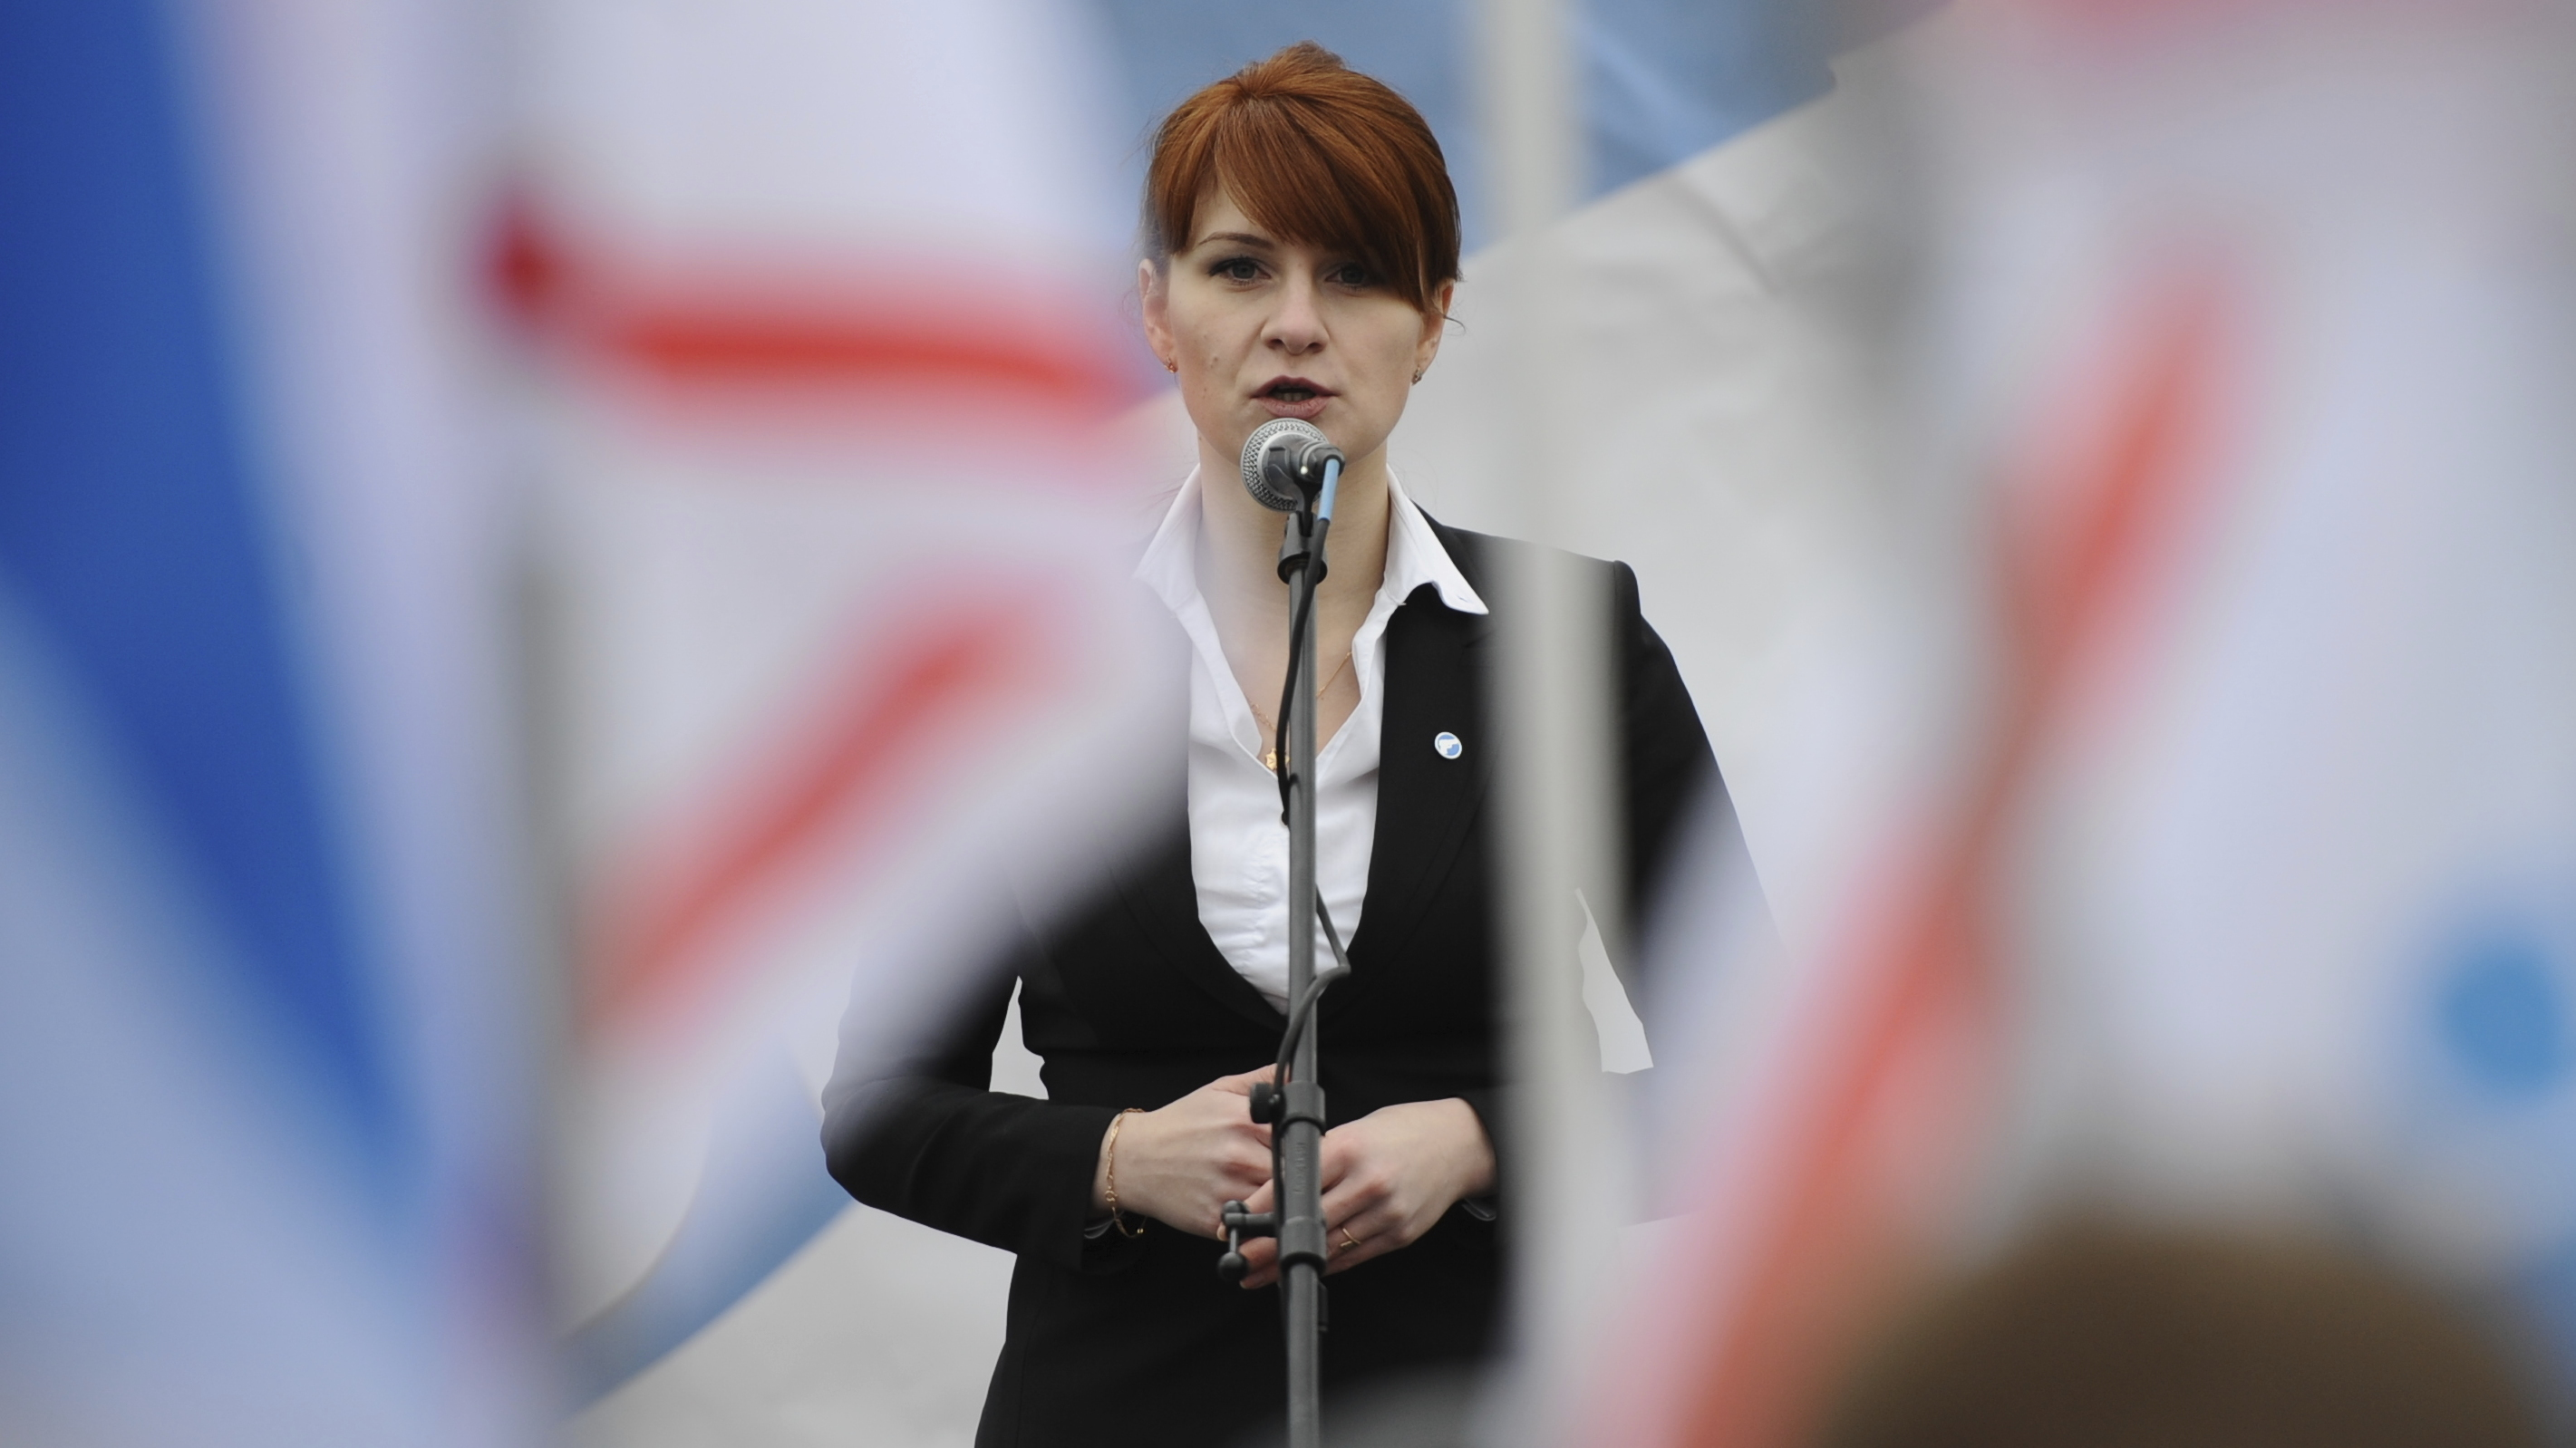 Russian gun rights activist Maria Butina pleaded guilty to serving as an unregistered foreign agent. She had sought to build back-channel links to the Russian government with the Trump campaign.